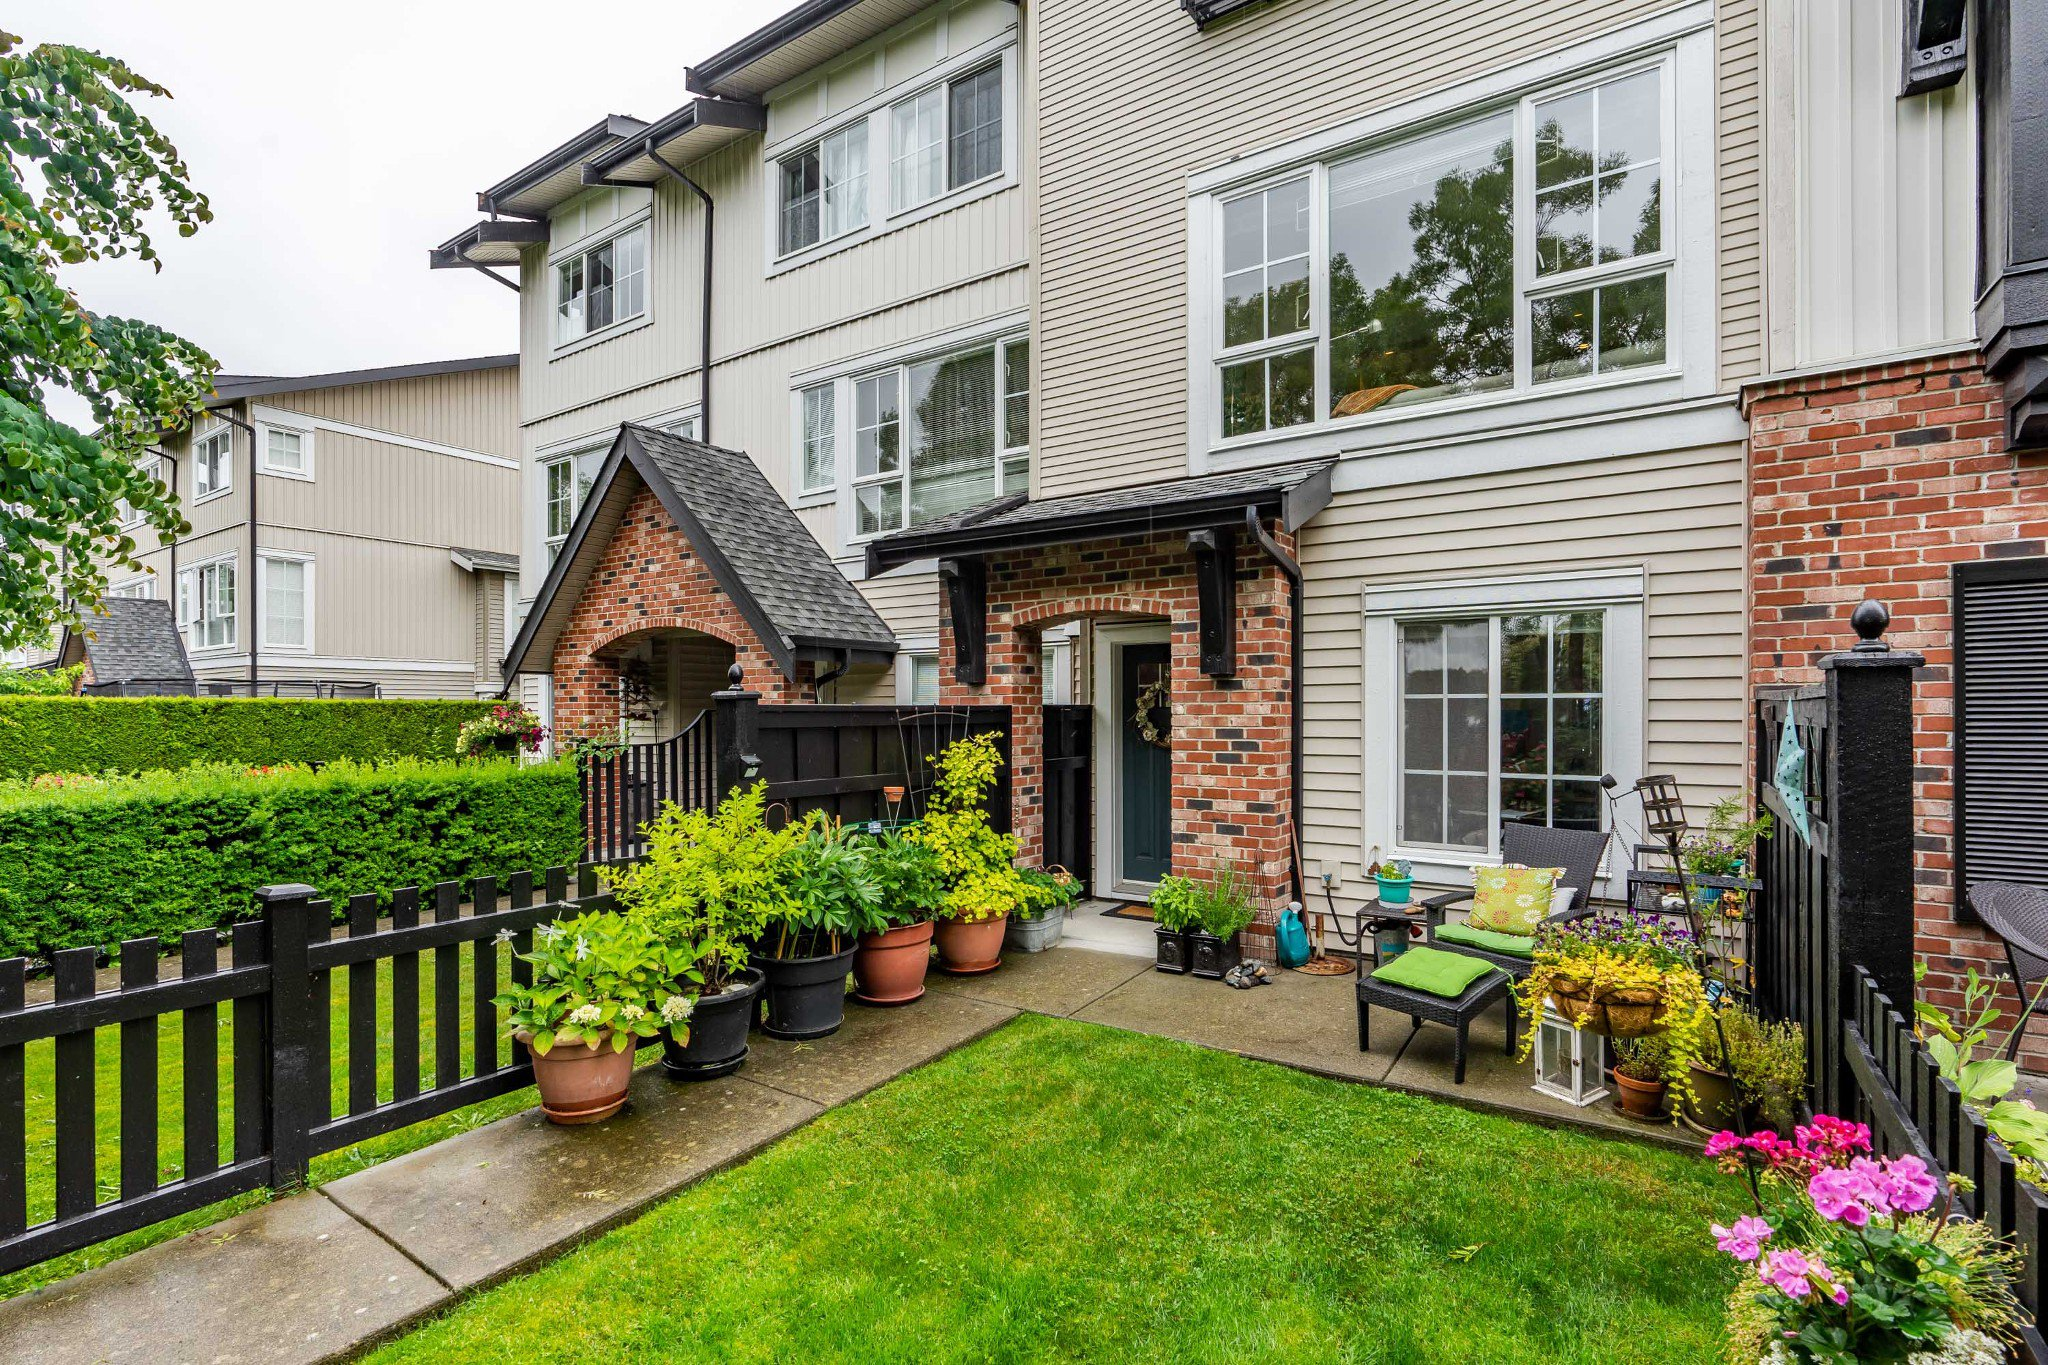 Main Photo: 22 2450 161A Street in Surrey: Grandview Surrey Townhouse for sale (South Surrey White Rock)  : MLS®# R2472218